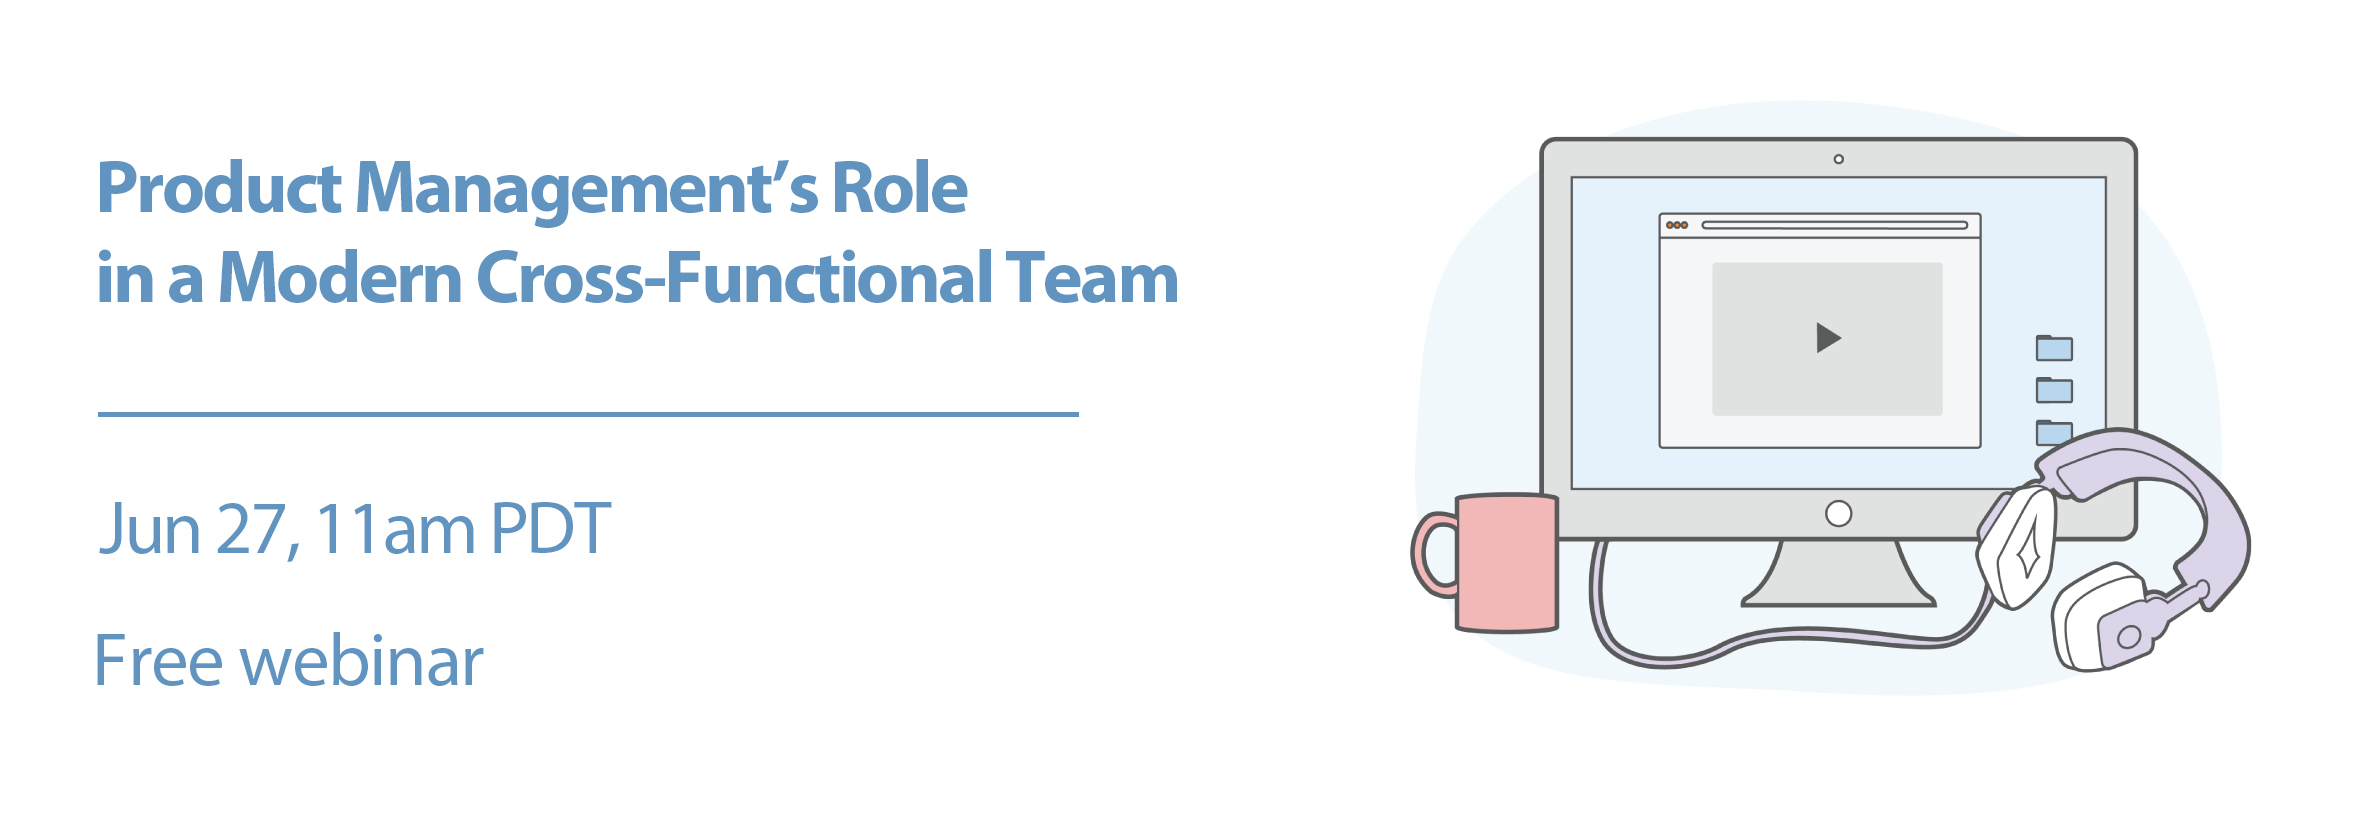 Product Stack Webinar: Product Management's Role in a Modern Cross-Functional Team blog post featured image